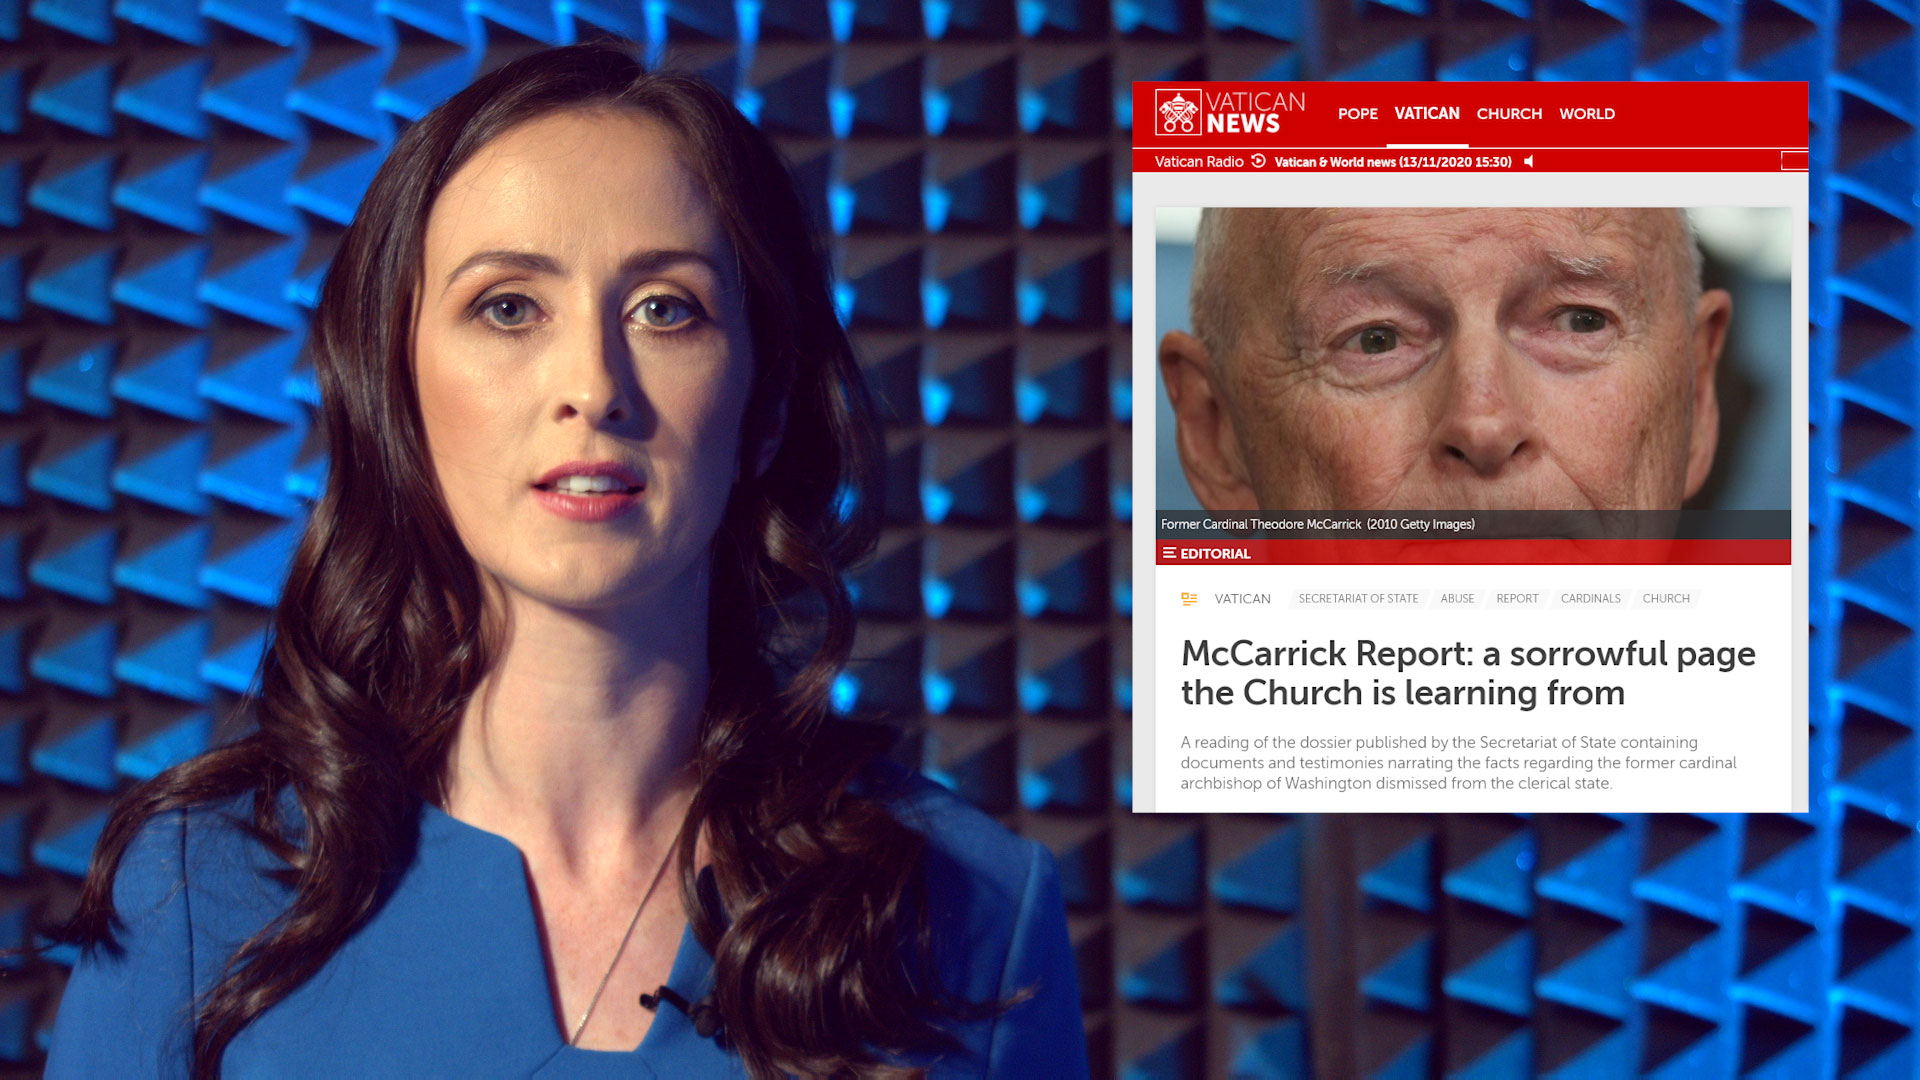 What we can learn from the McCarrick report  – Austen Ivereigh